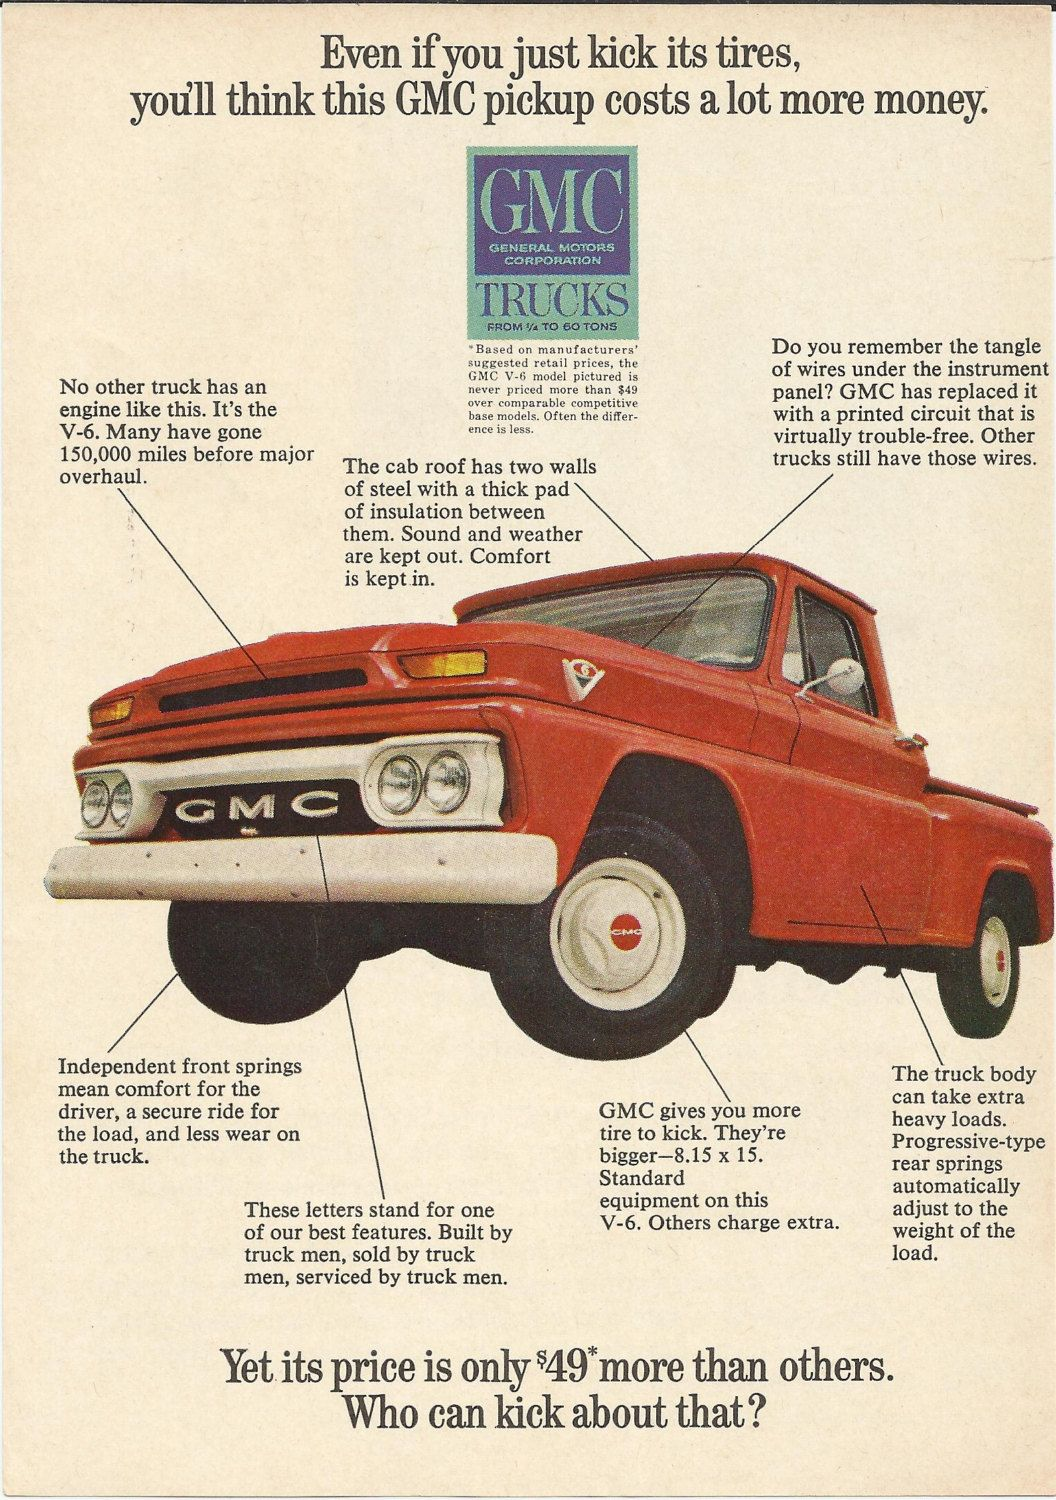 Gmc Pickup Truck Original 1965 Vintage Print Ad Color Illustration